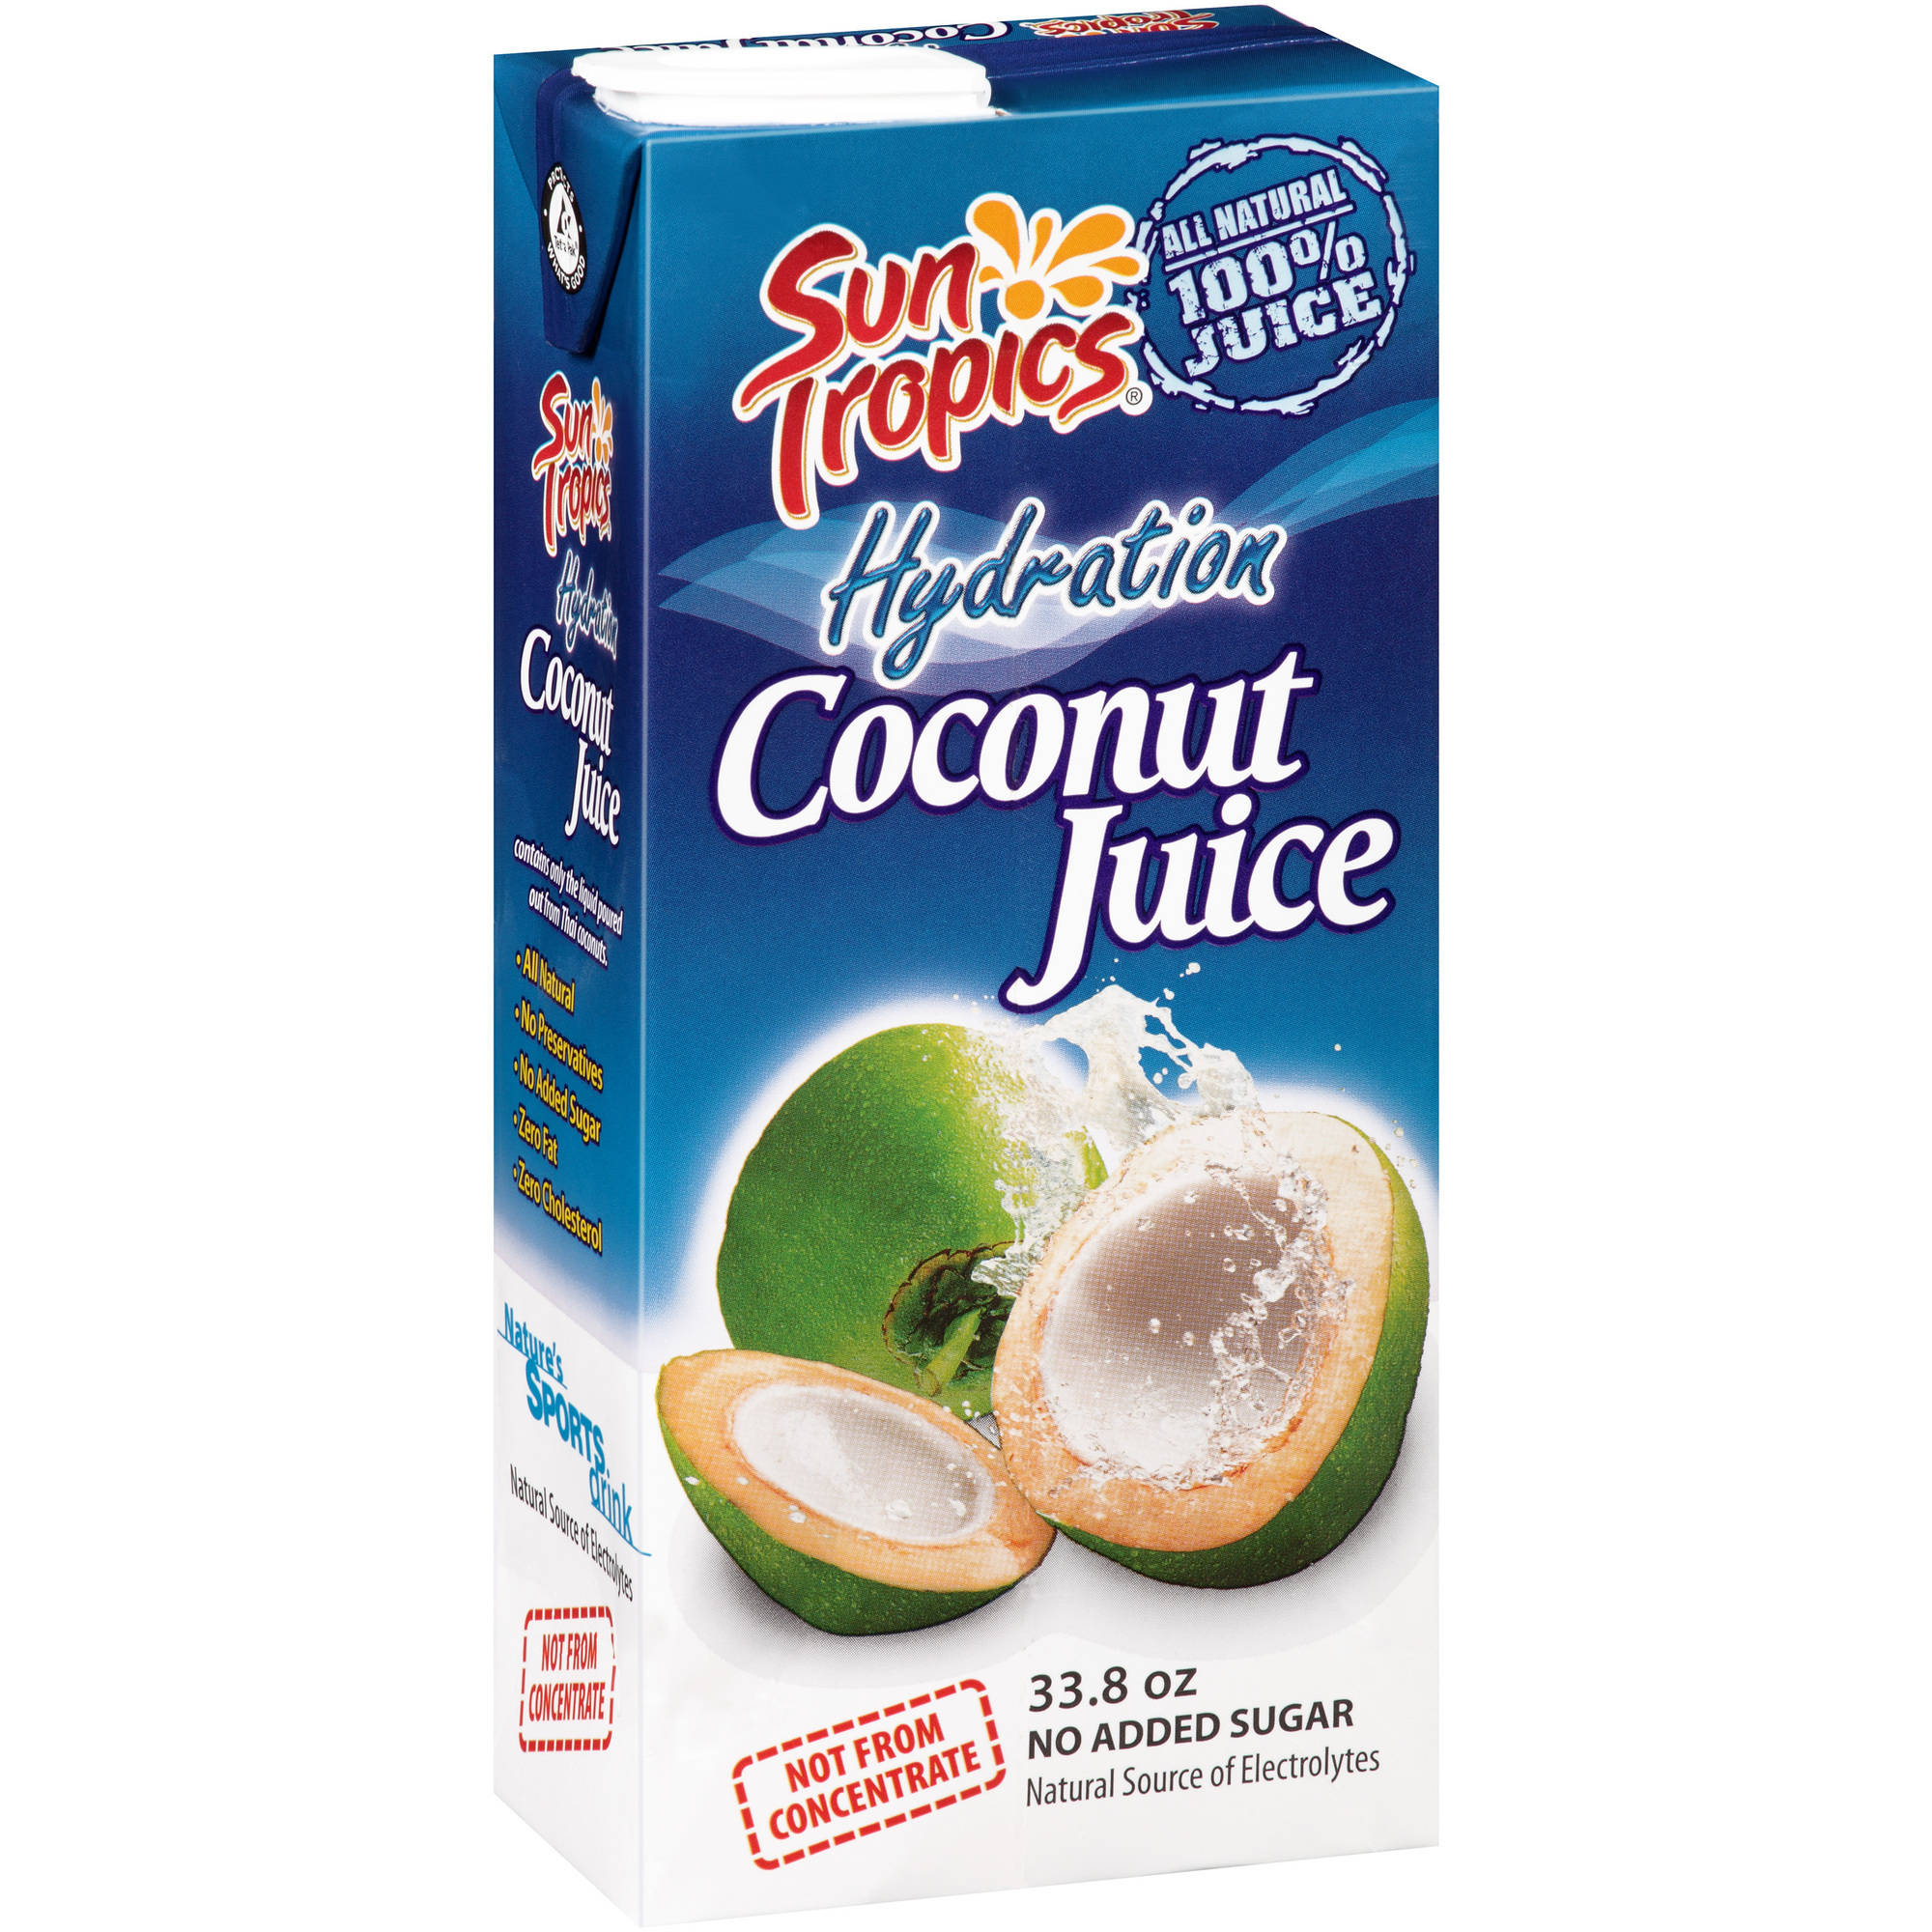 Sun Tropics Hydration Coconut Juice, 33.8 oz